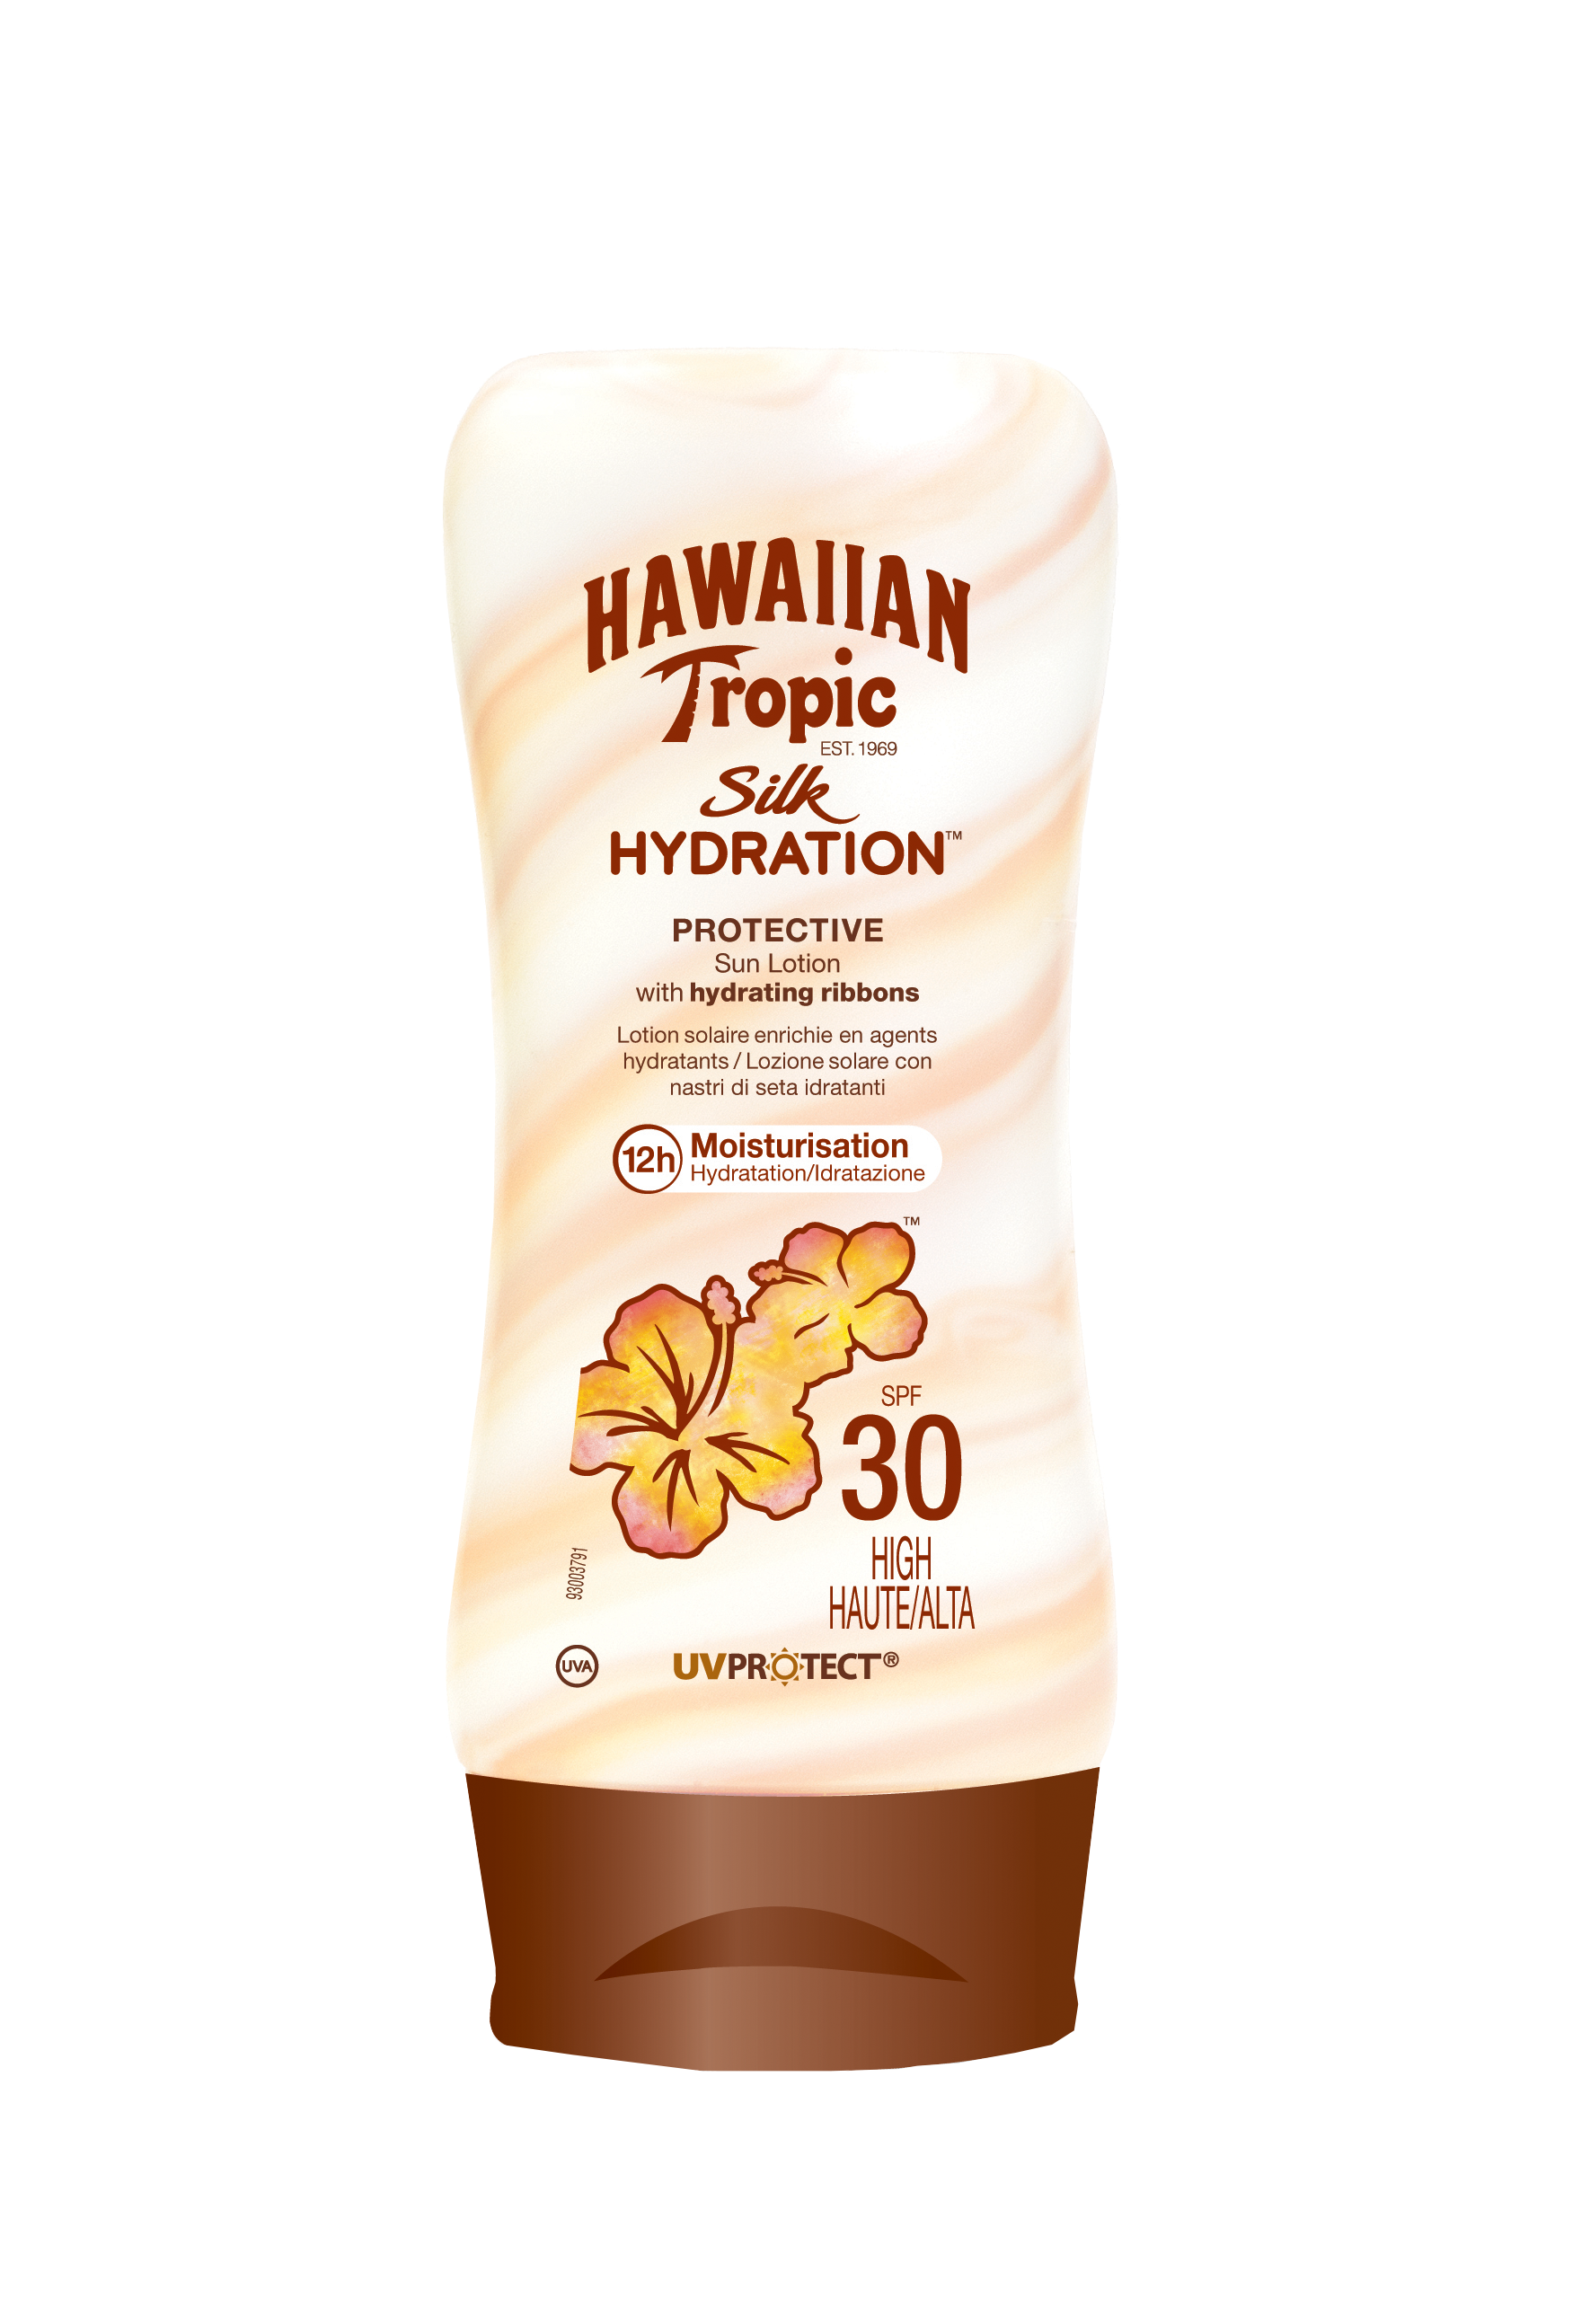 Silk Hydration Protective Lotion SPF 30